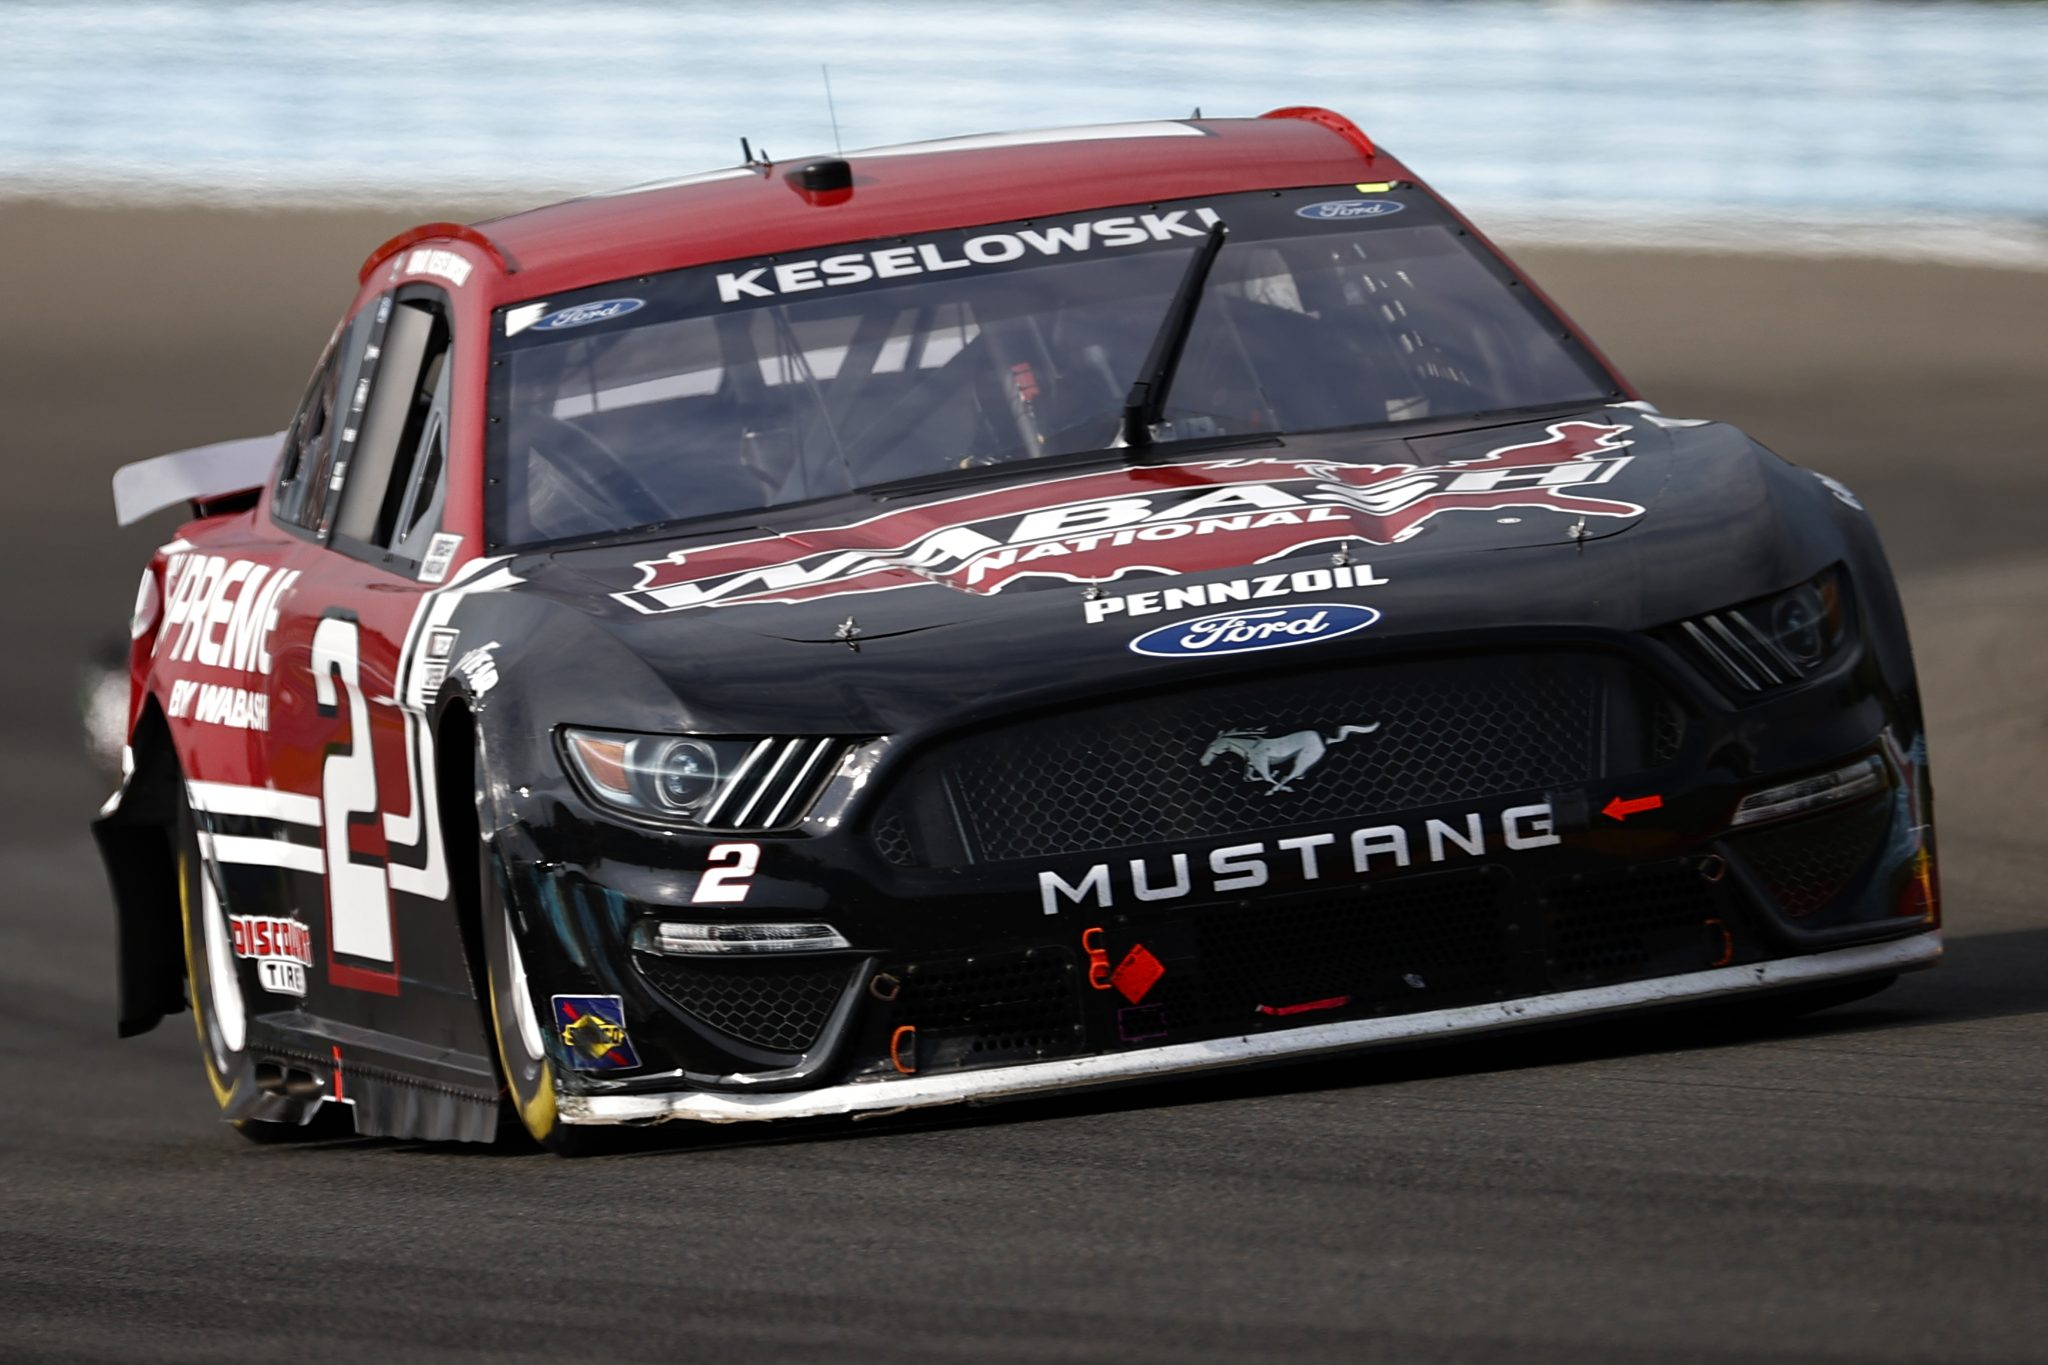 WATKINS GLEN, NEW YORK - AUGUST 08: Brad Keselowski, driver of the #2 Wabash National Ford, drives during the NASCAR Cup Series Go Bowling at The Glen at Watkins Glen International on August 08, 2021 in Watkins Glen, New York. (Photo by Jared C. Tilton/Getty Images)   Getty Images